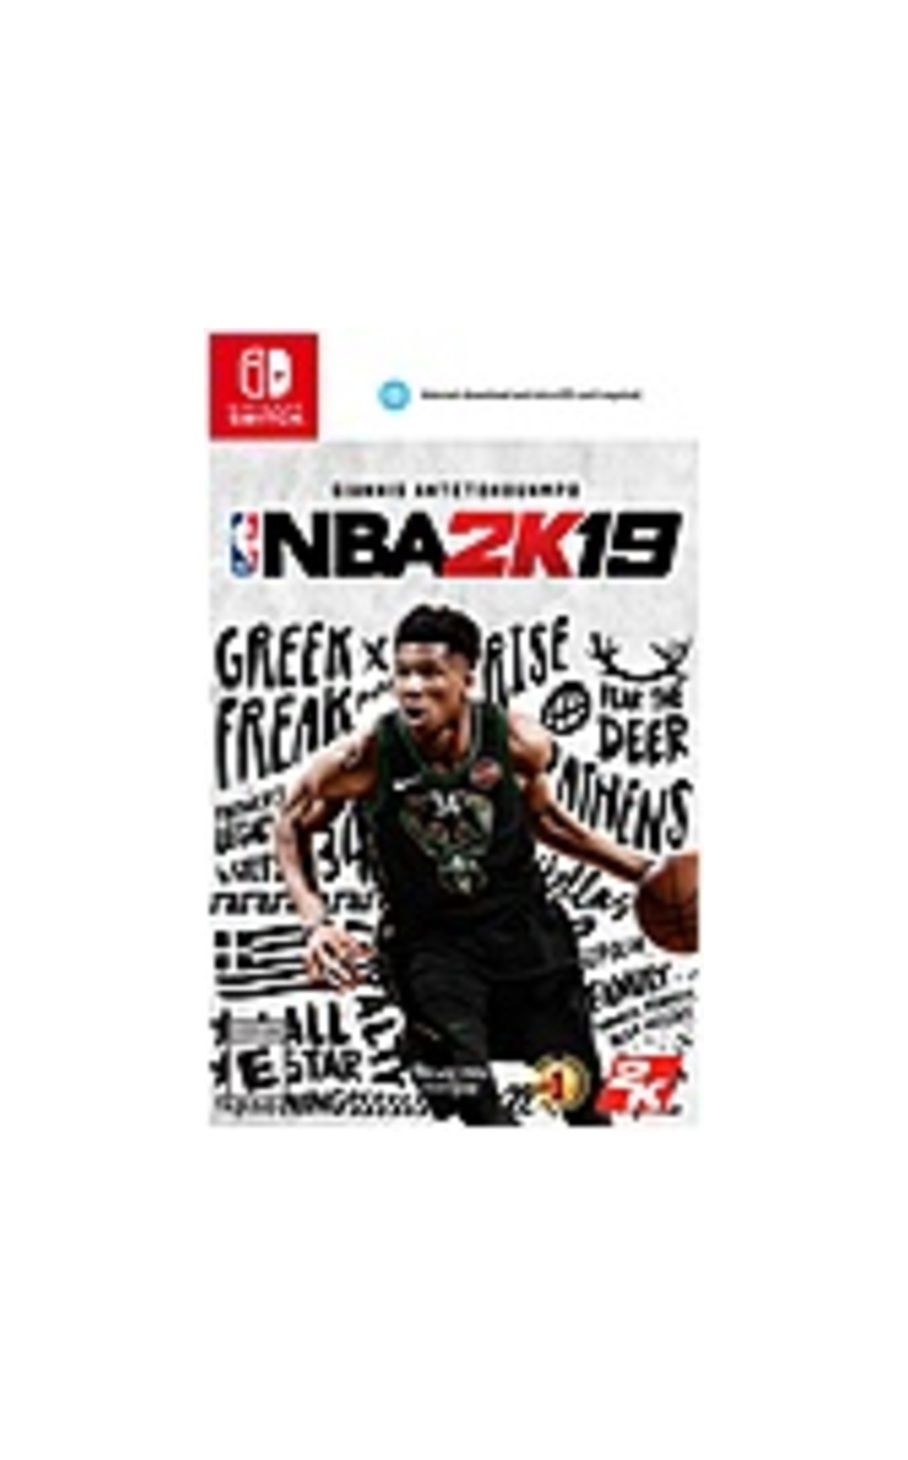 2K NBA 2K19 - Sports Game - Nintendo Switch